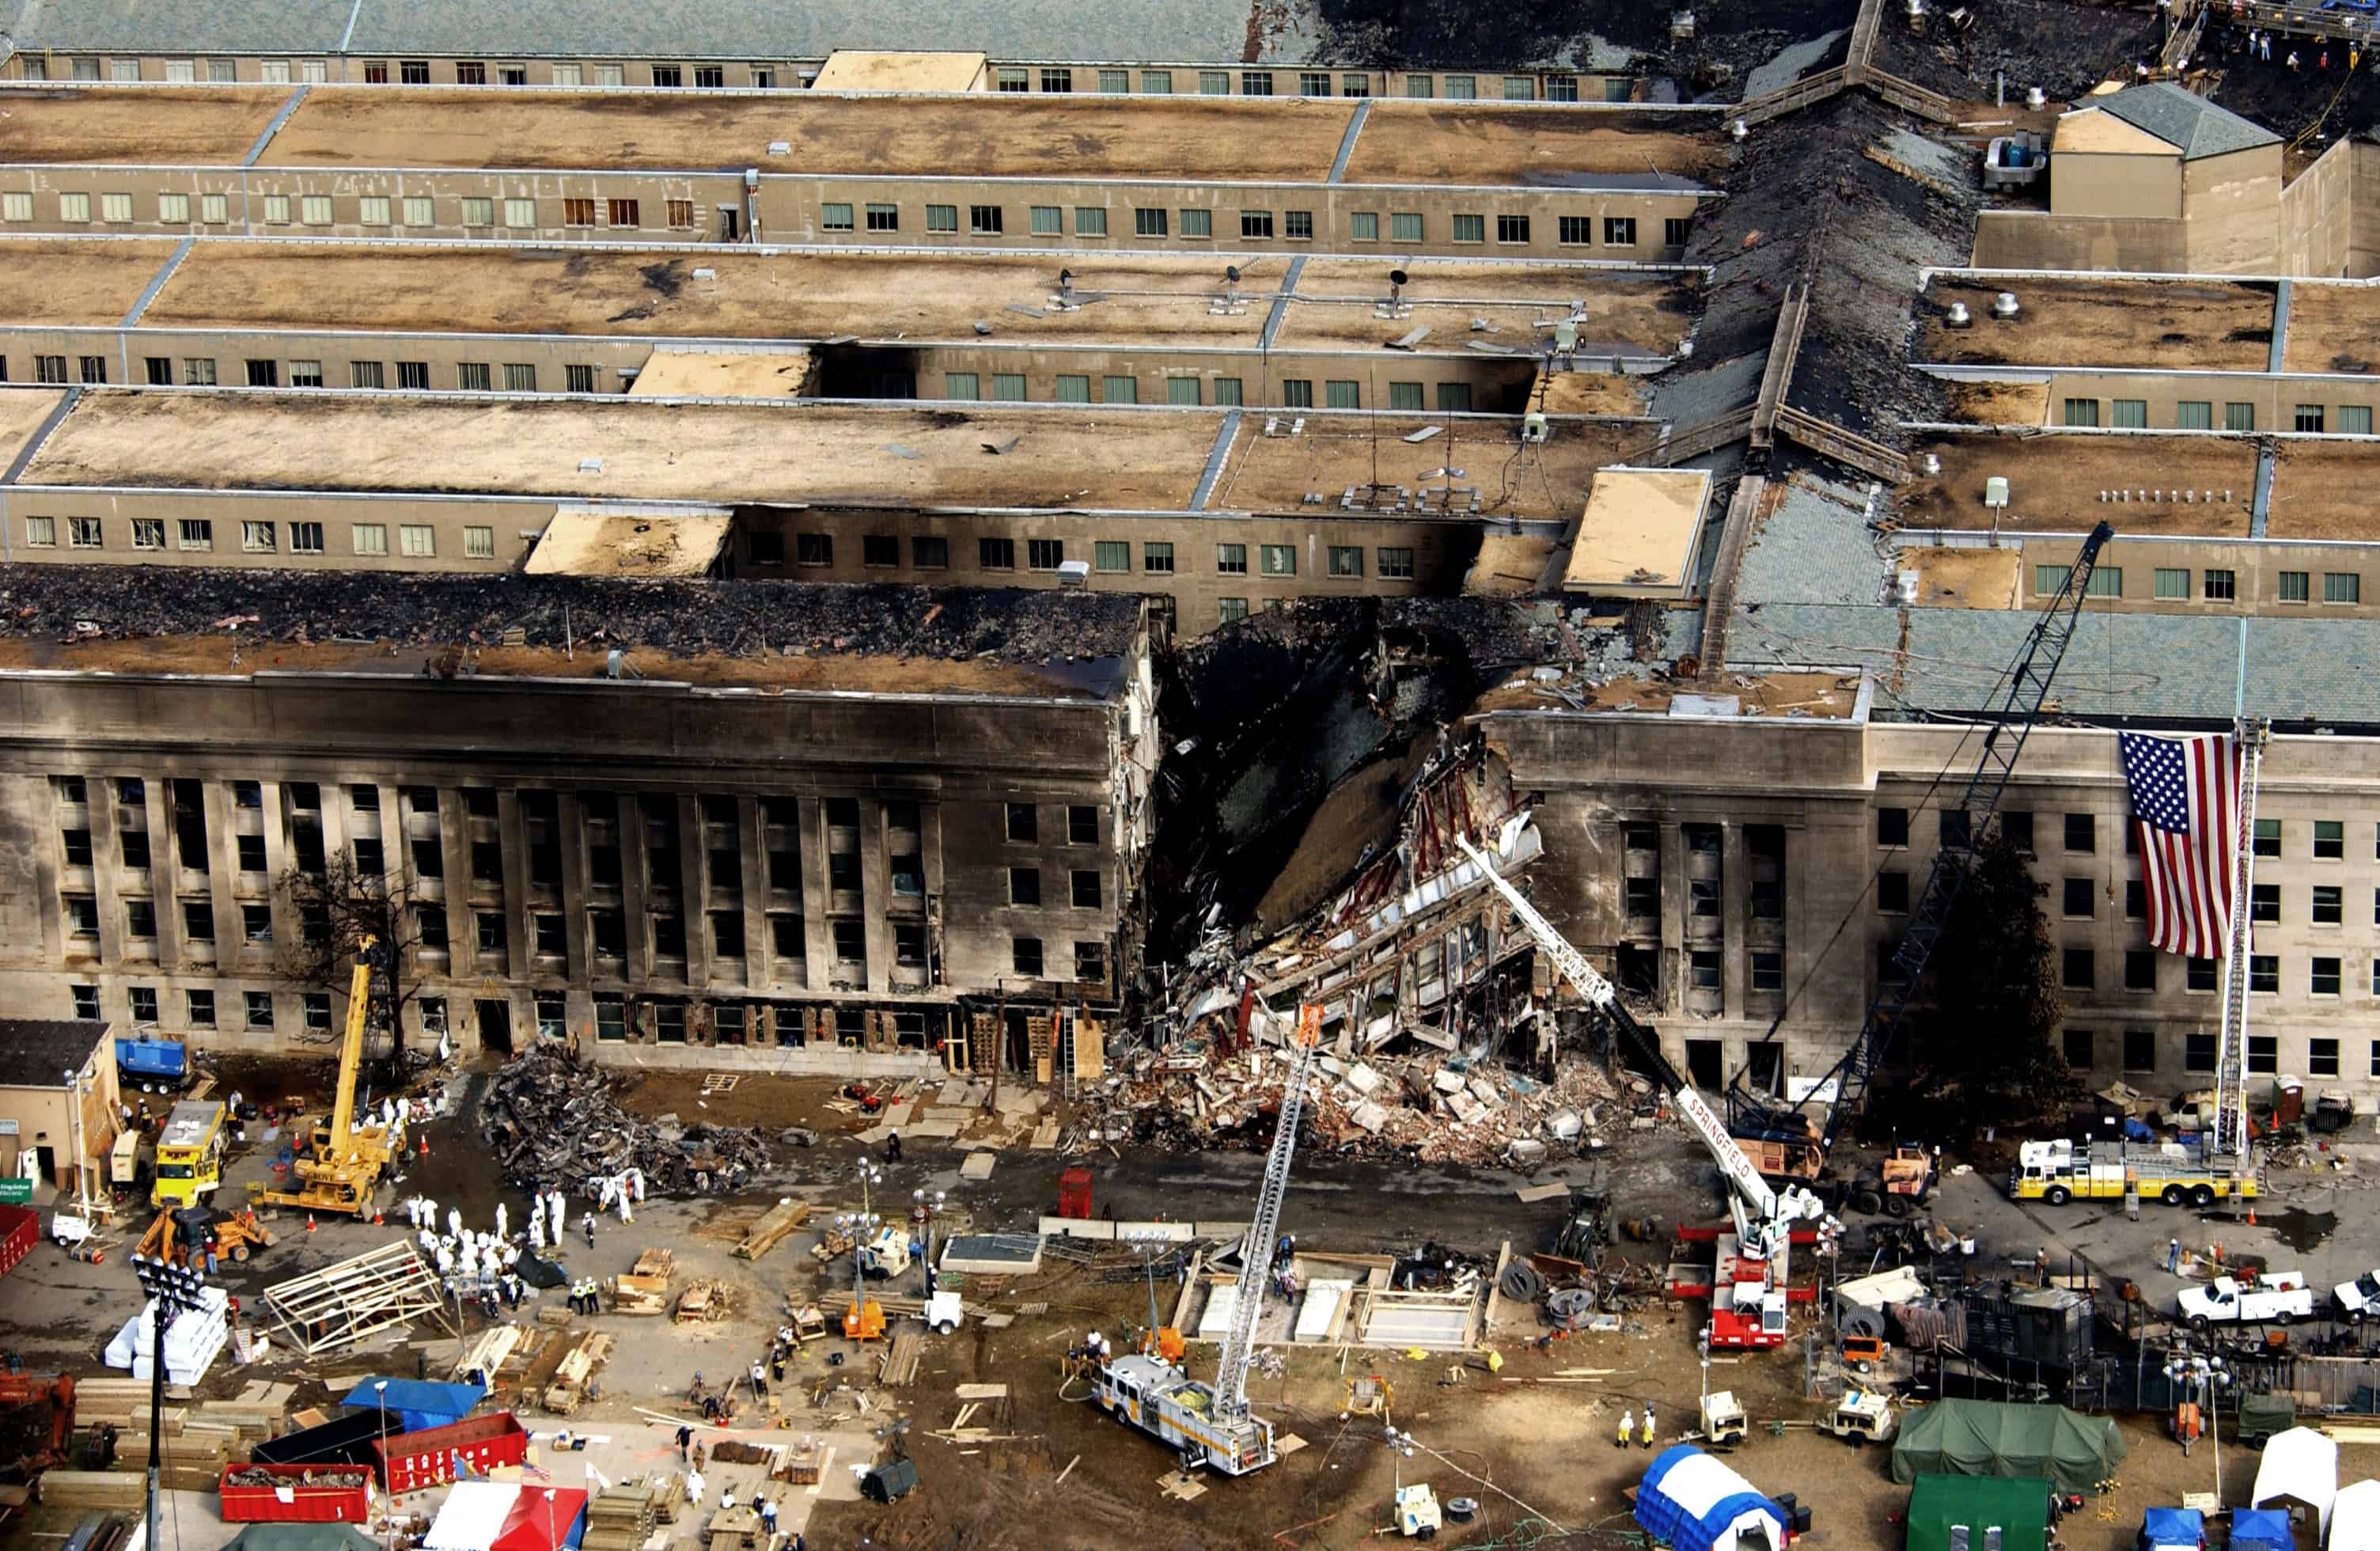 2001; PENTAGON ON 9/11